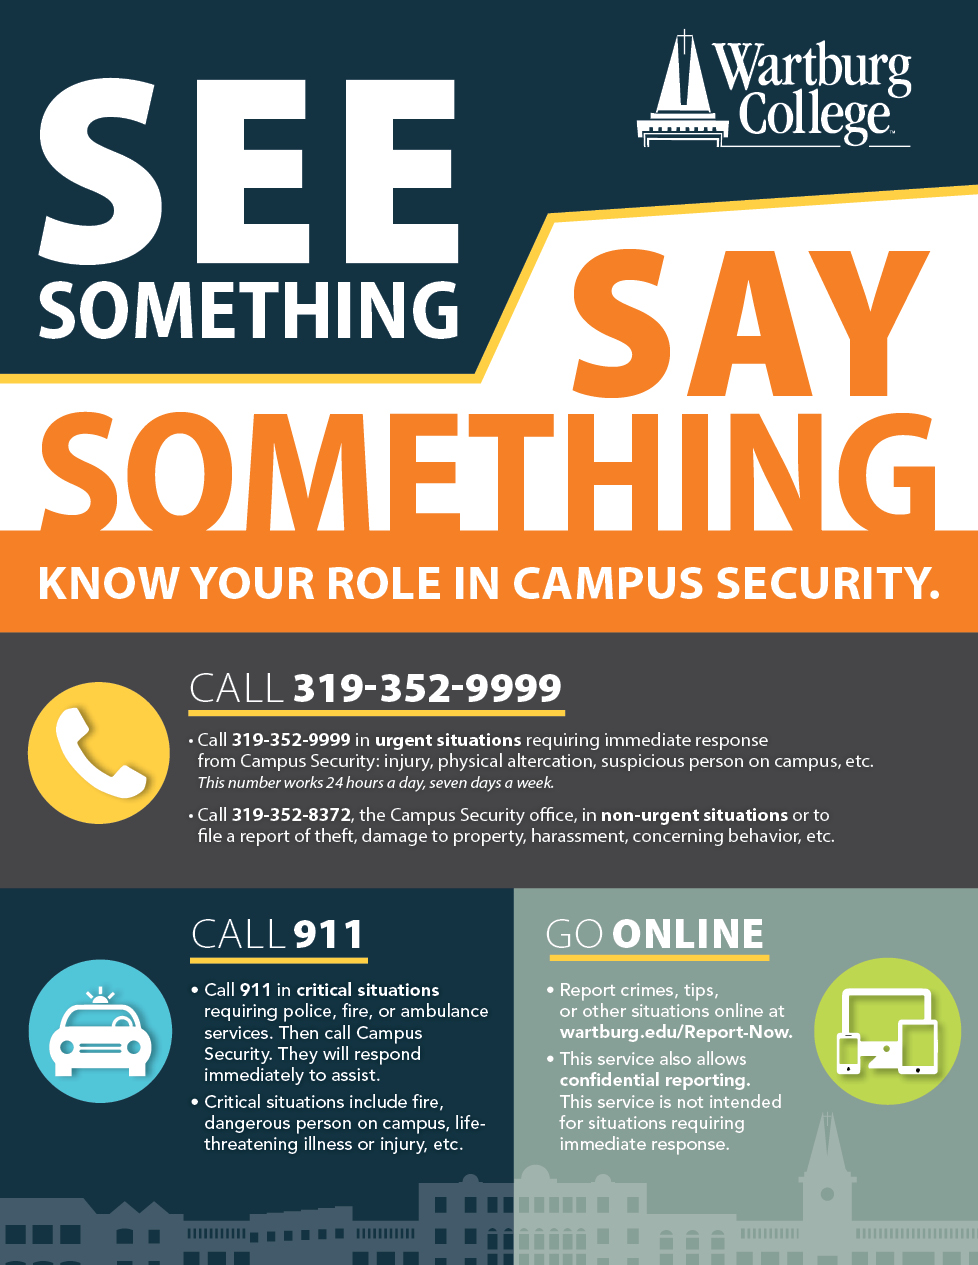 image is of see something say something poster campaign